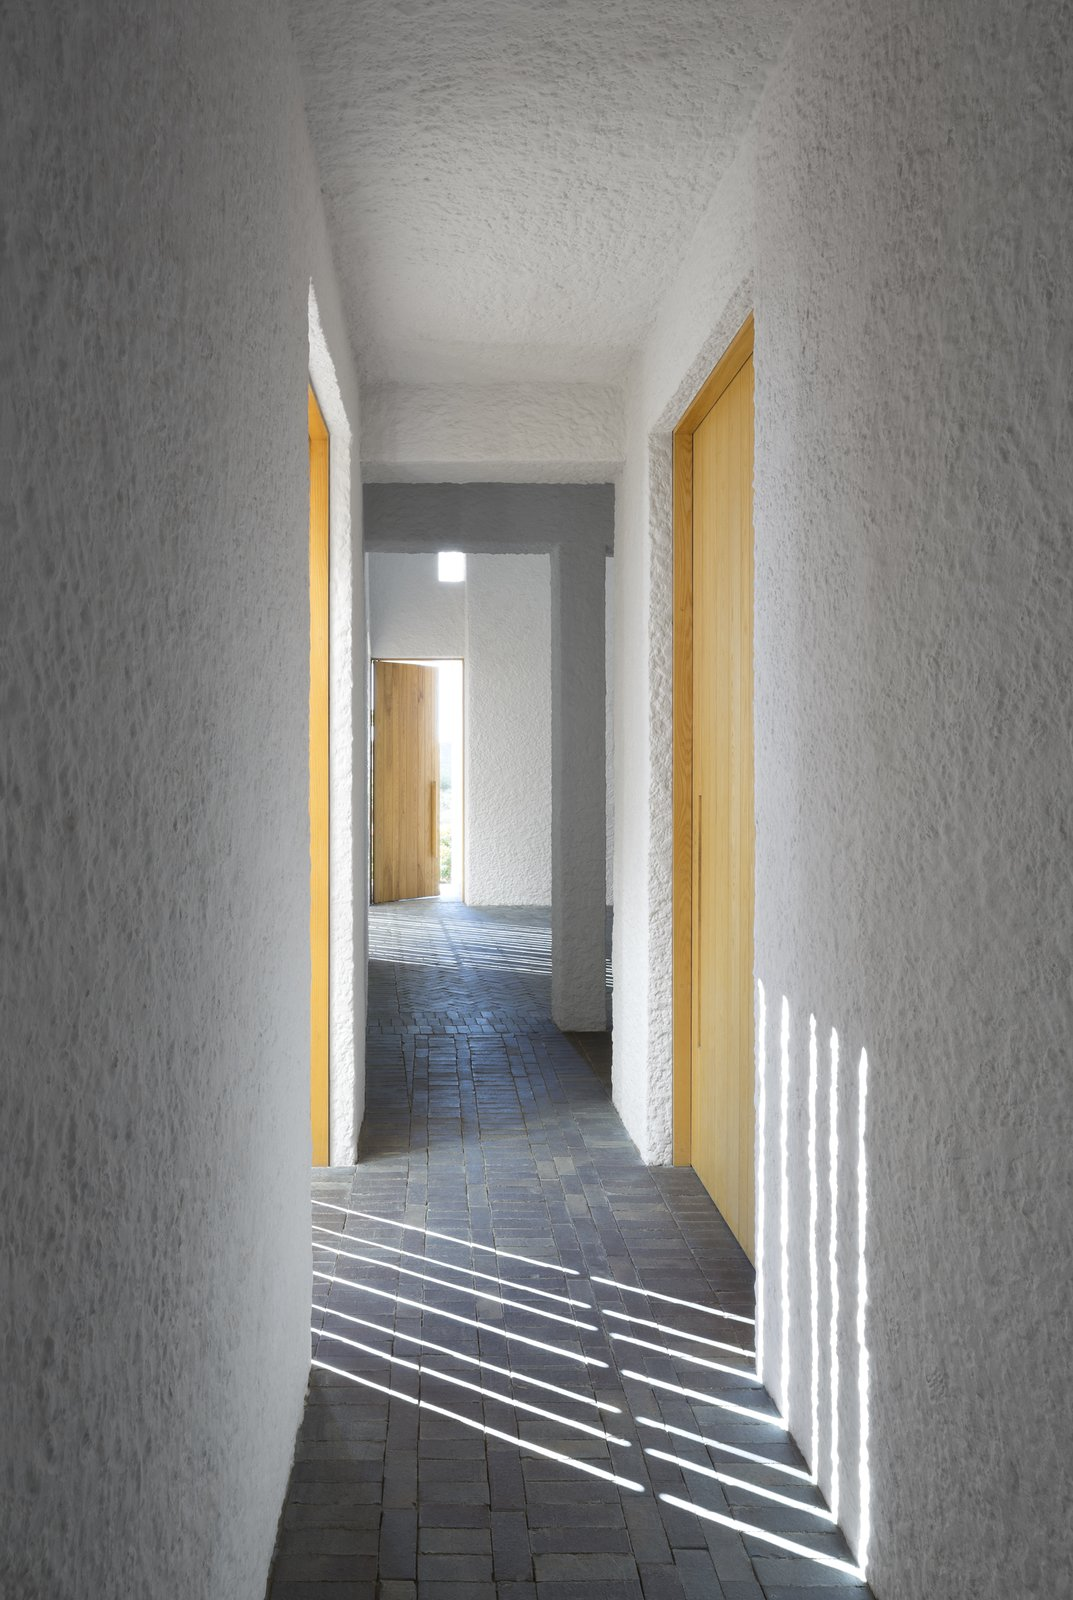 By day, the home's rectilinear windows cast an artful composition of linear shadow and light.